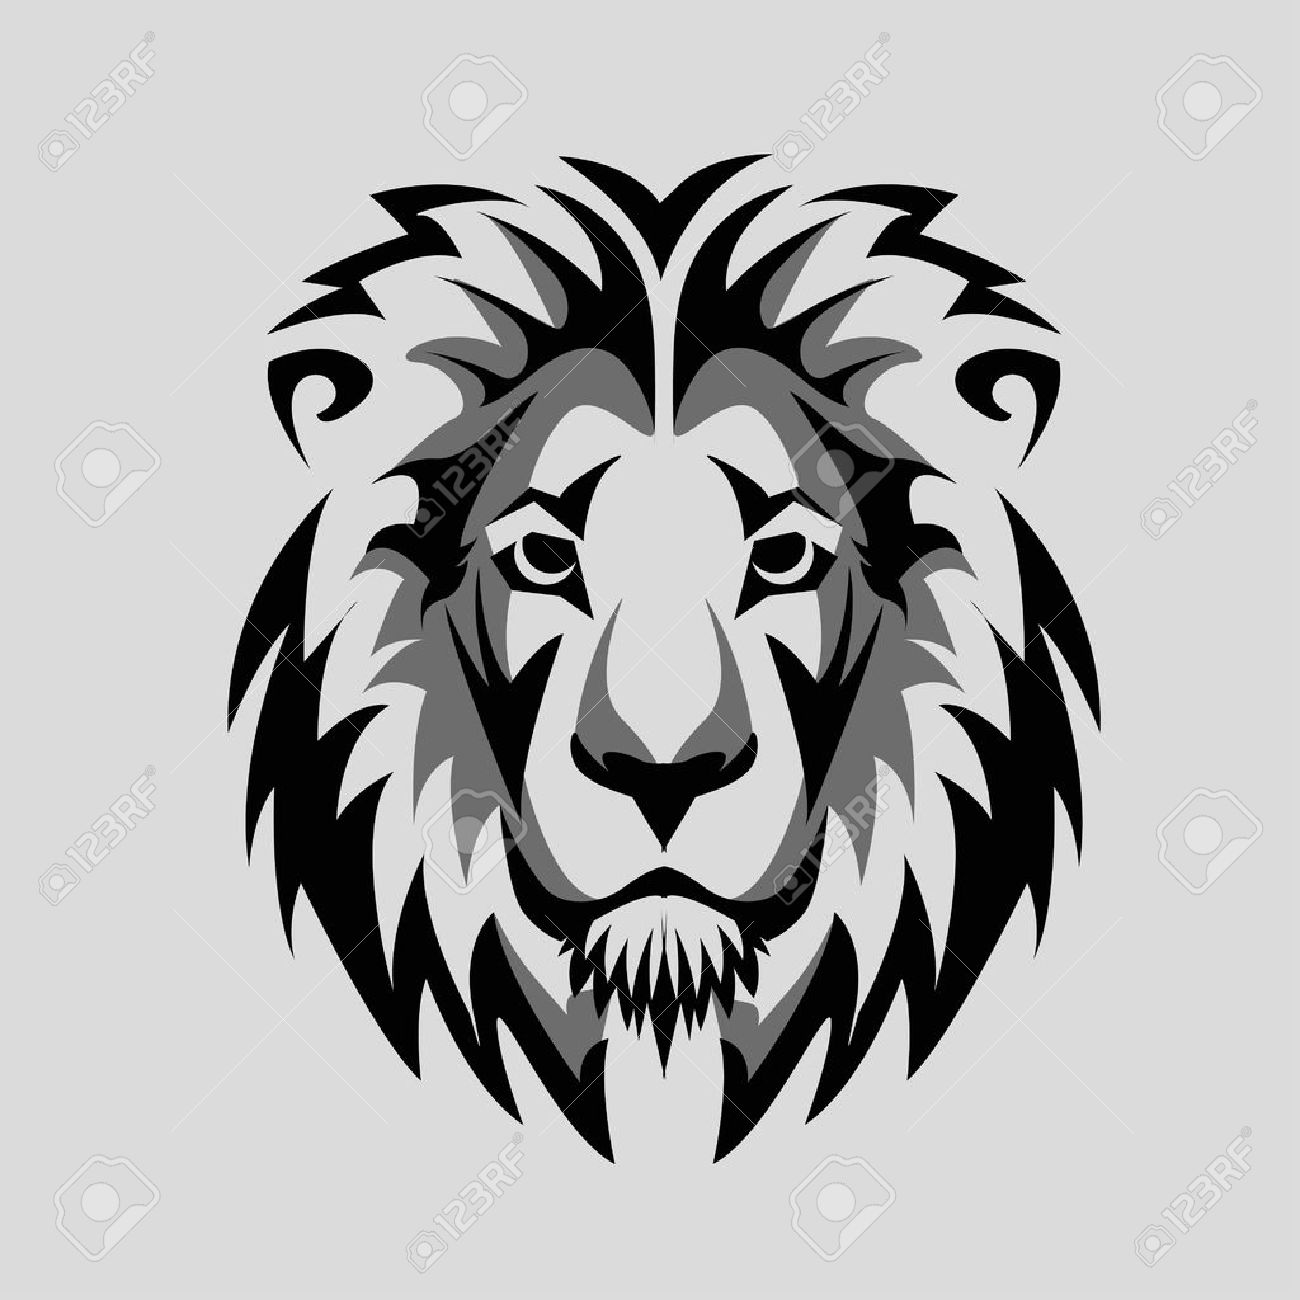 1300x1300 Lion Head Black White Icon Royalty Free Cliparts, Vectors,